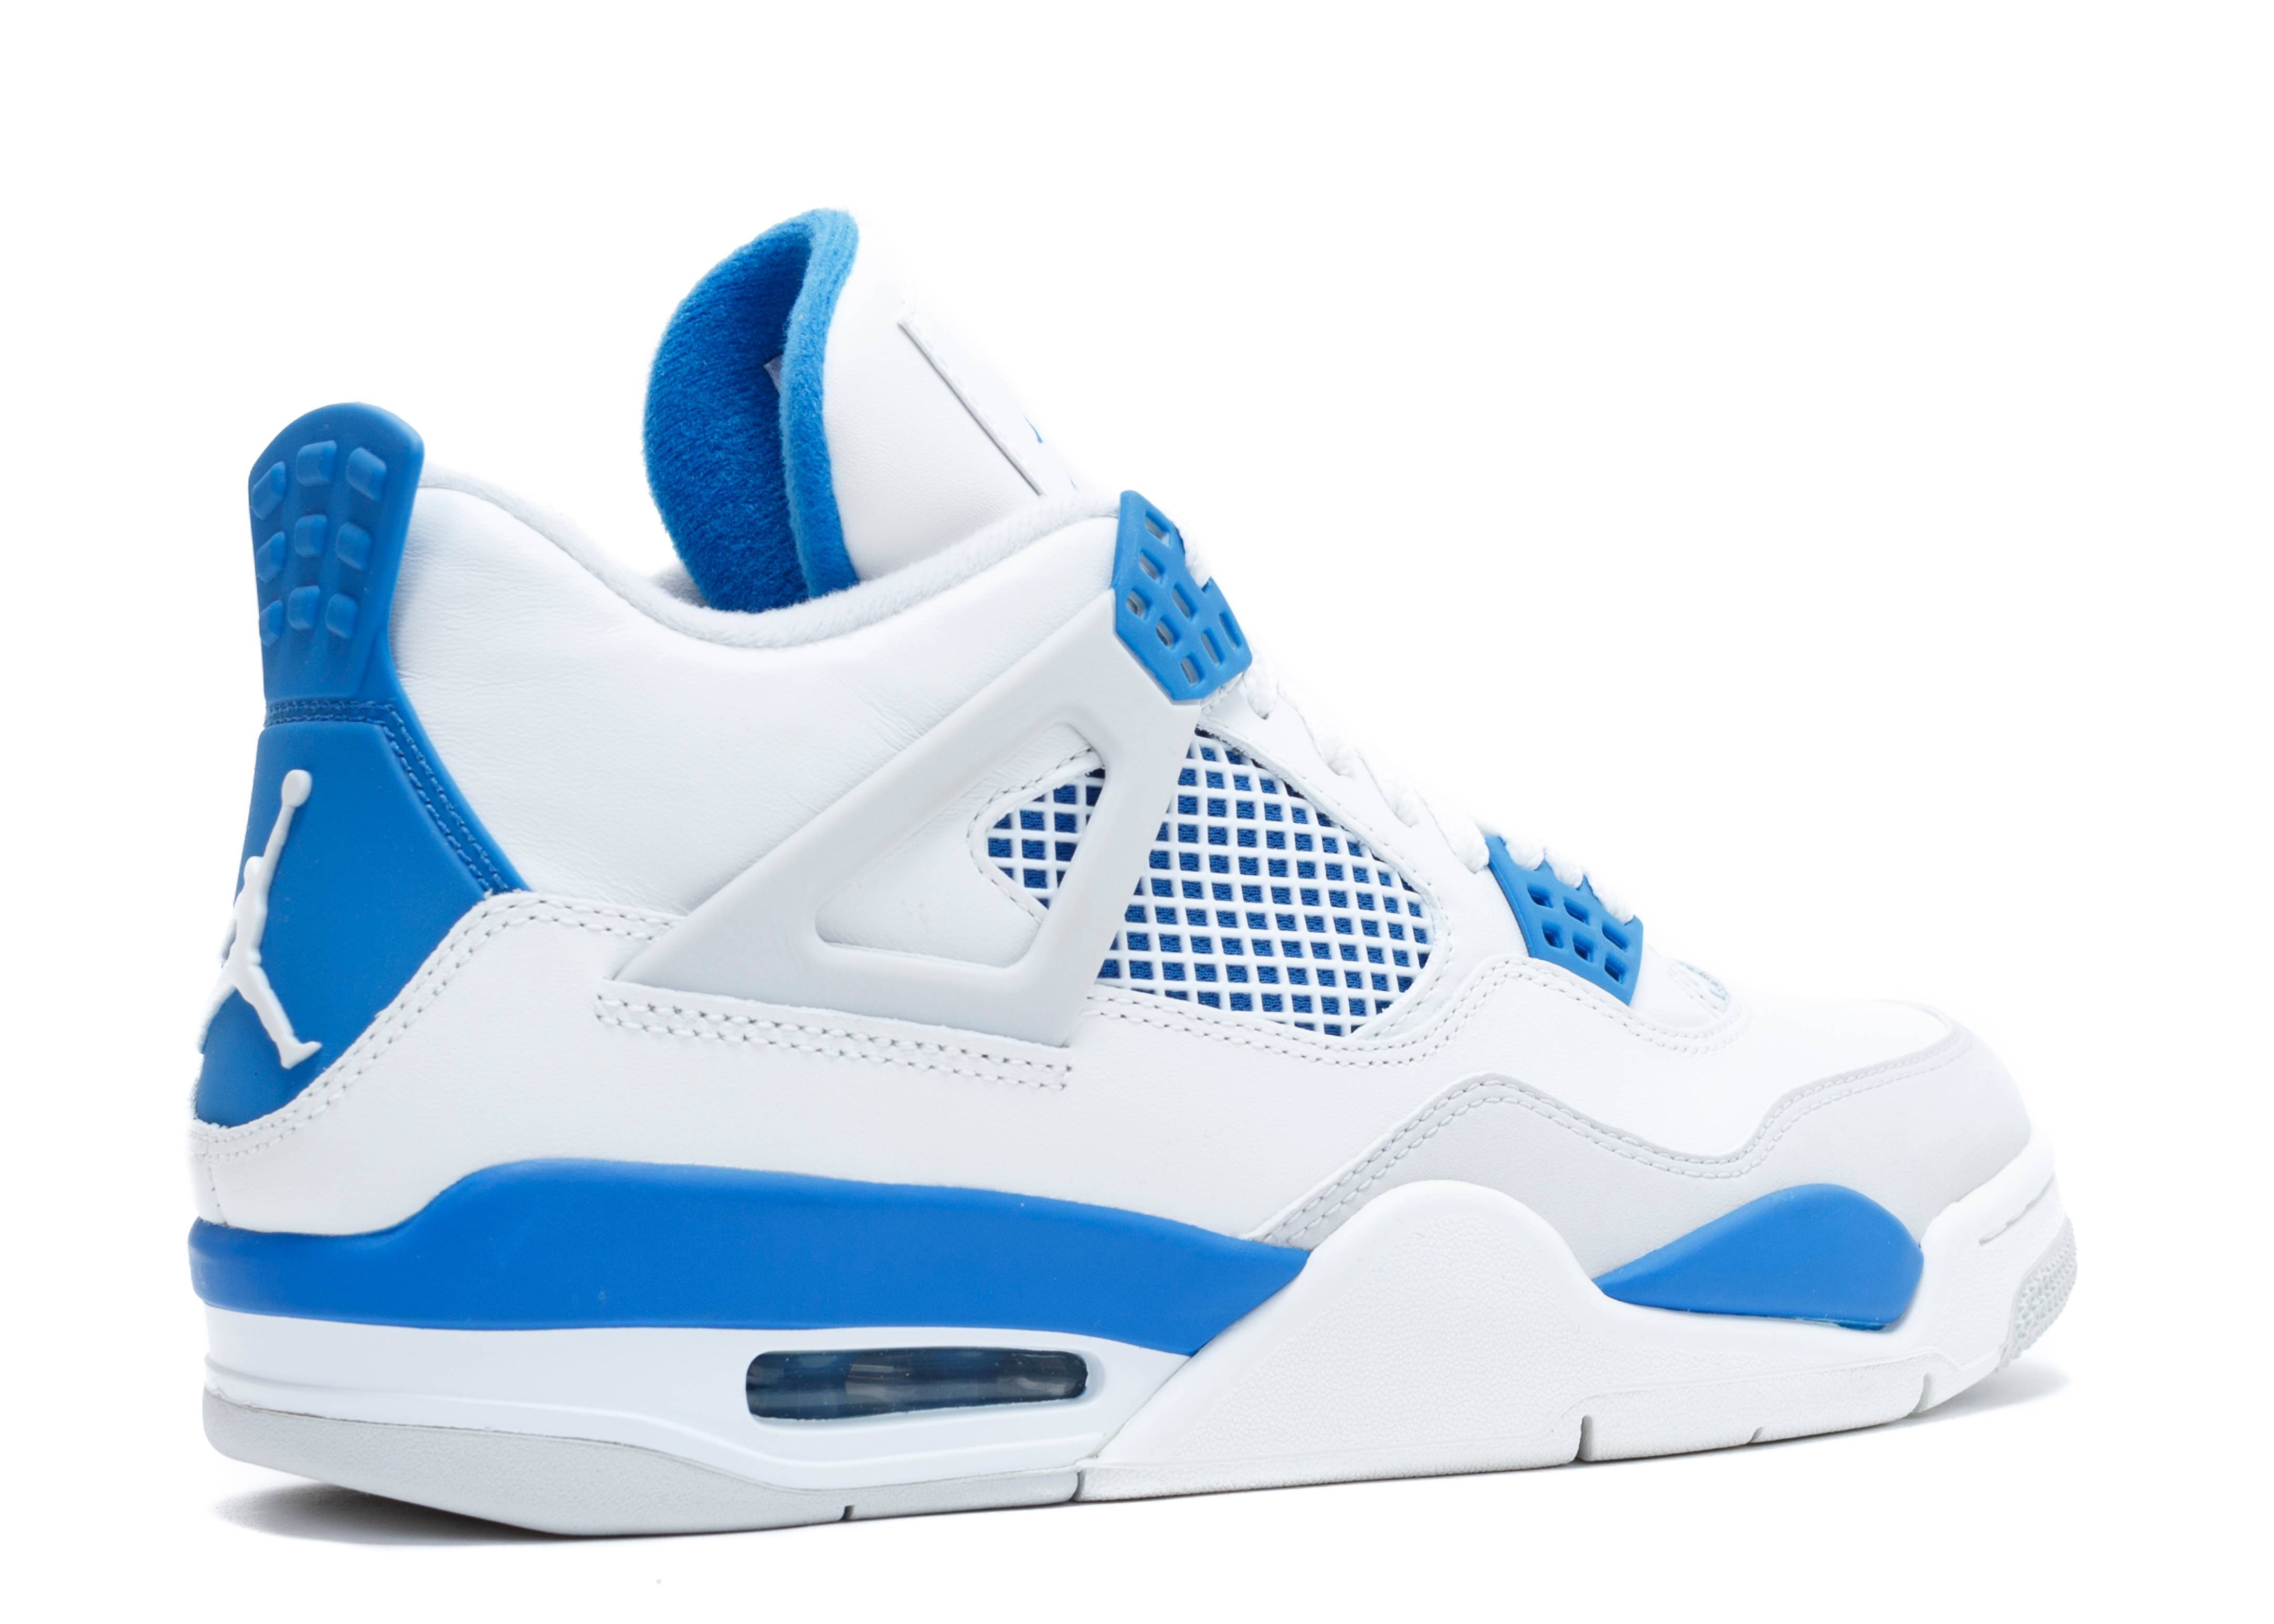 nike air jordan 4 retro - white/military blue-ntrl grey